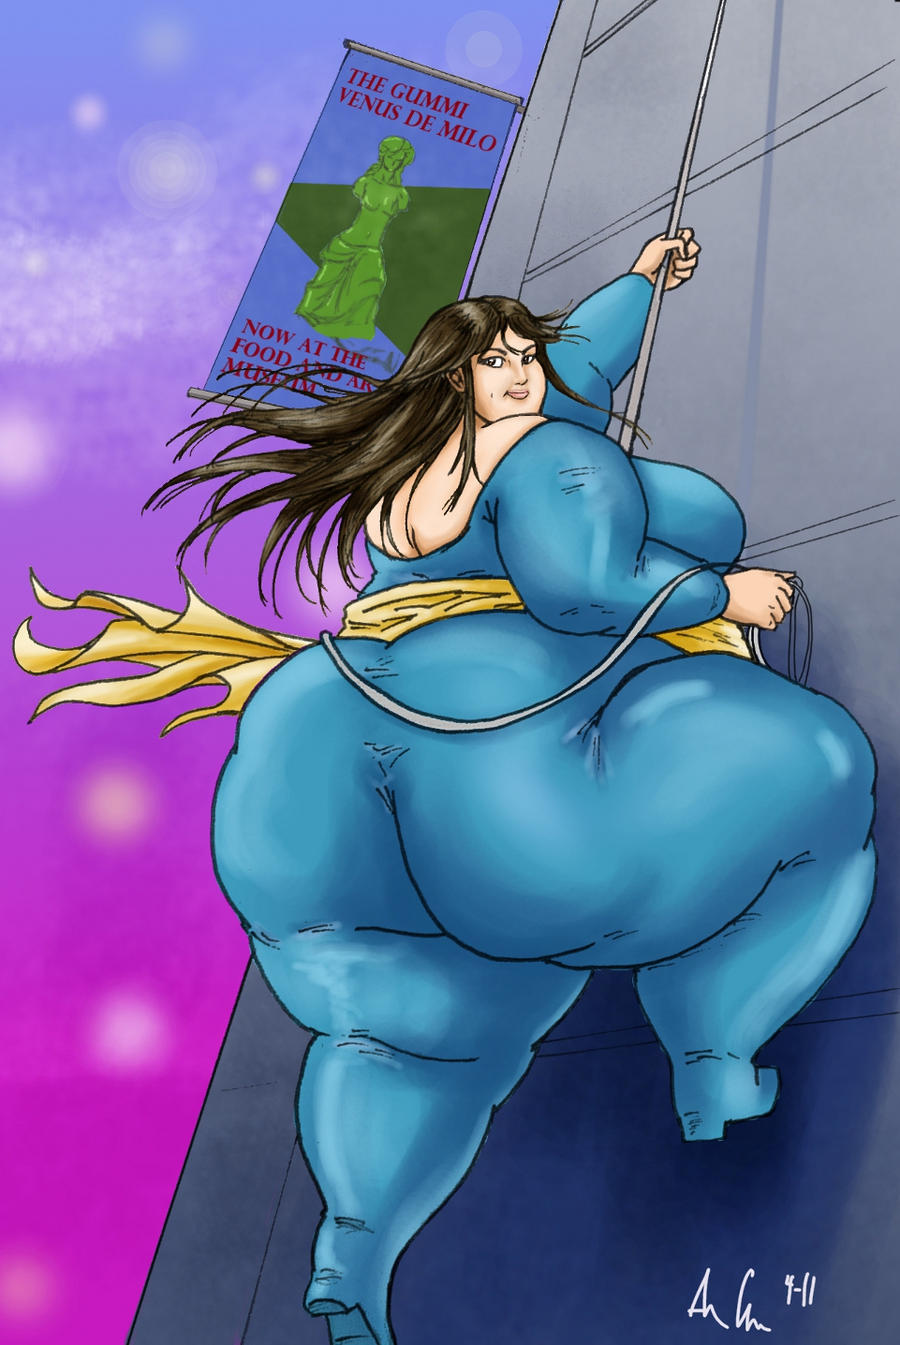 56040494629 additionally Fat Hitomi From Cat S Eye 204161392 as well  furthermore Search furthermore Royalty Free Stock Images Fat Brown Dog Scale D Rendering Cartoon Standing Image33263879. on obese cat cartoon